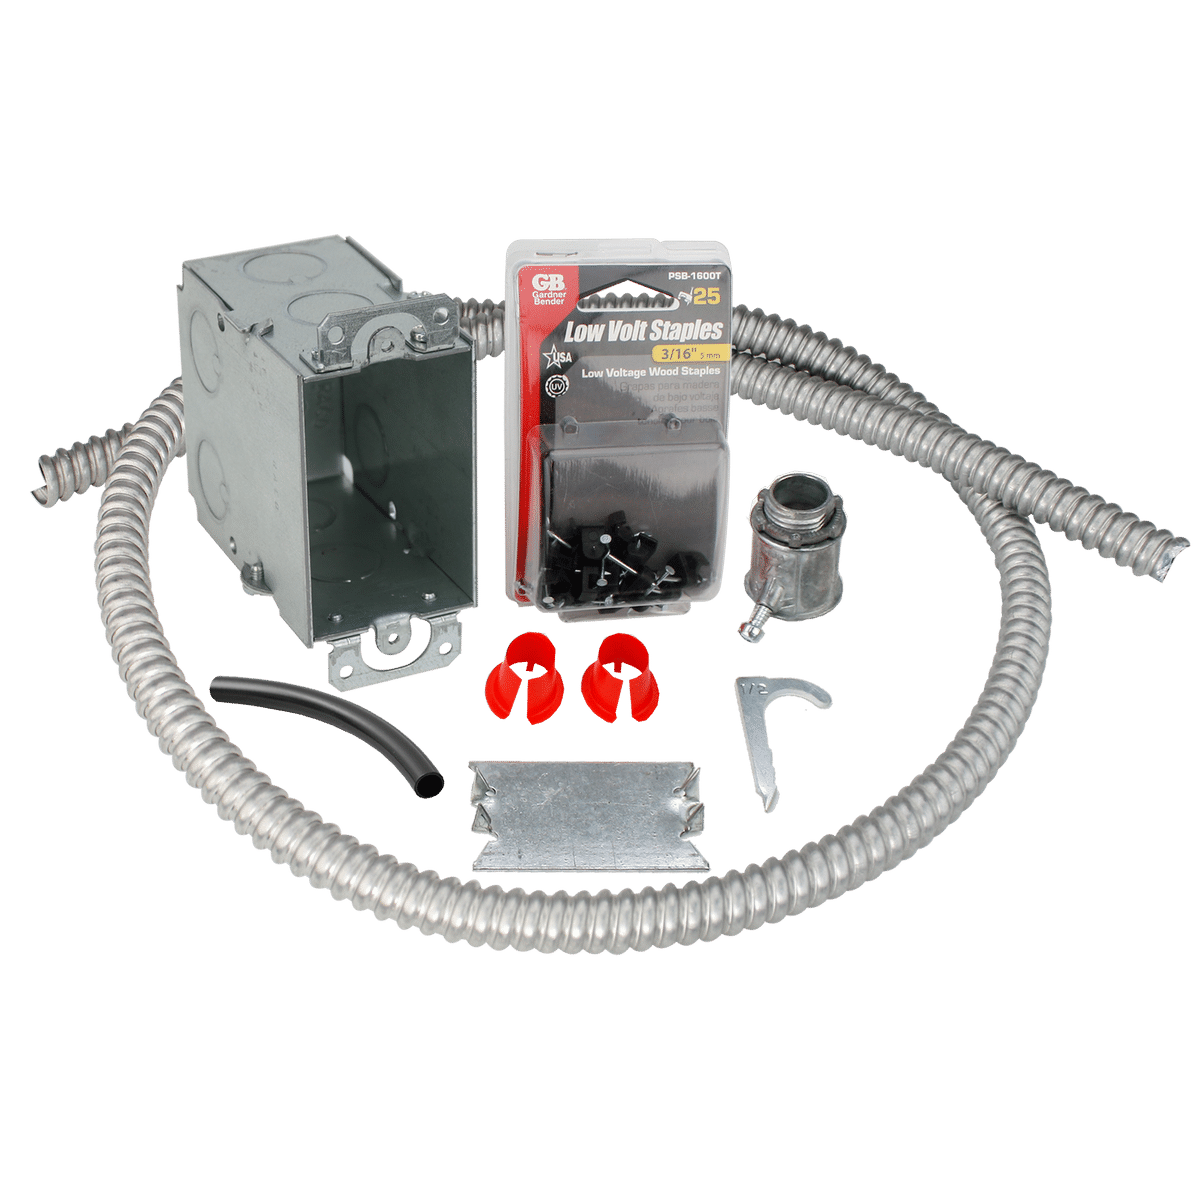 Electrical Rough-in Kit Single Gang Box with Single Conduit